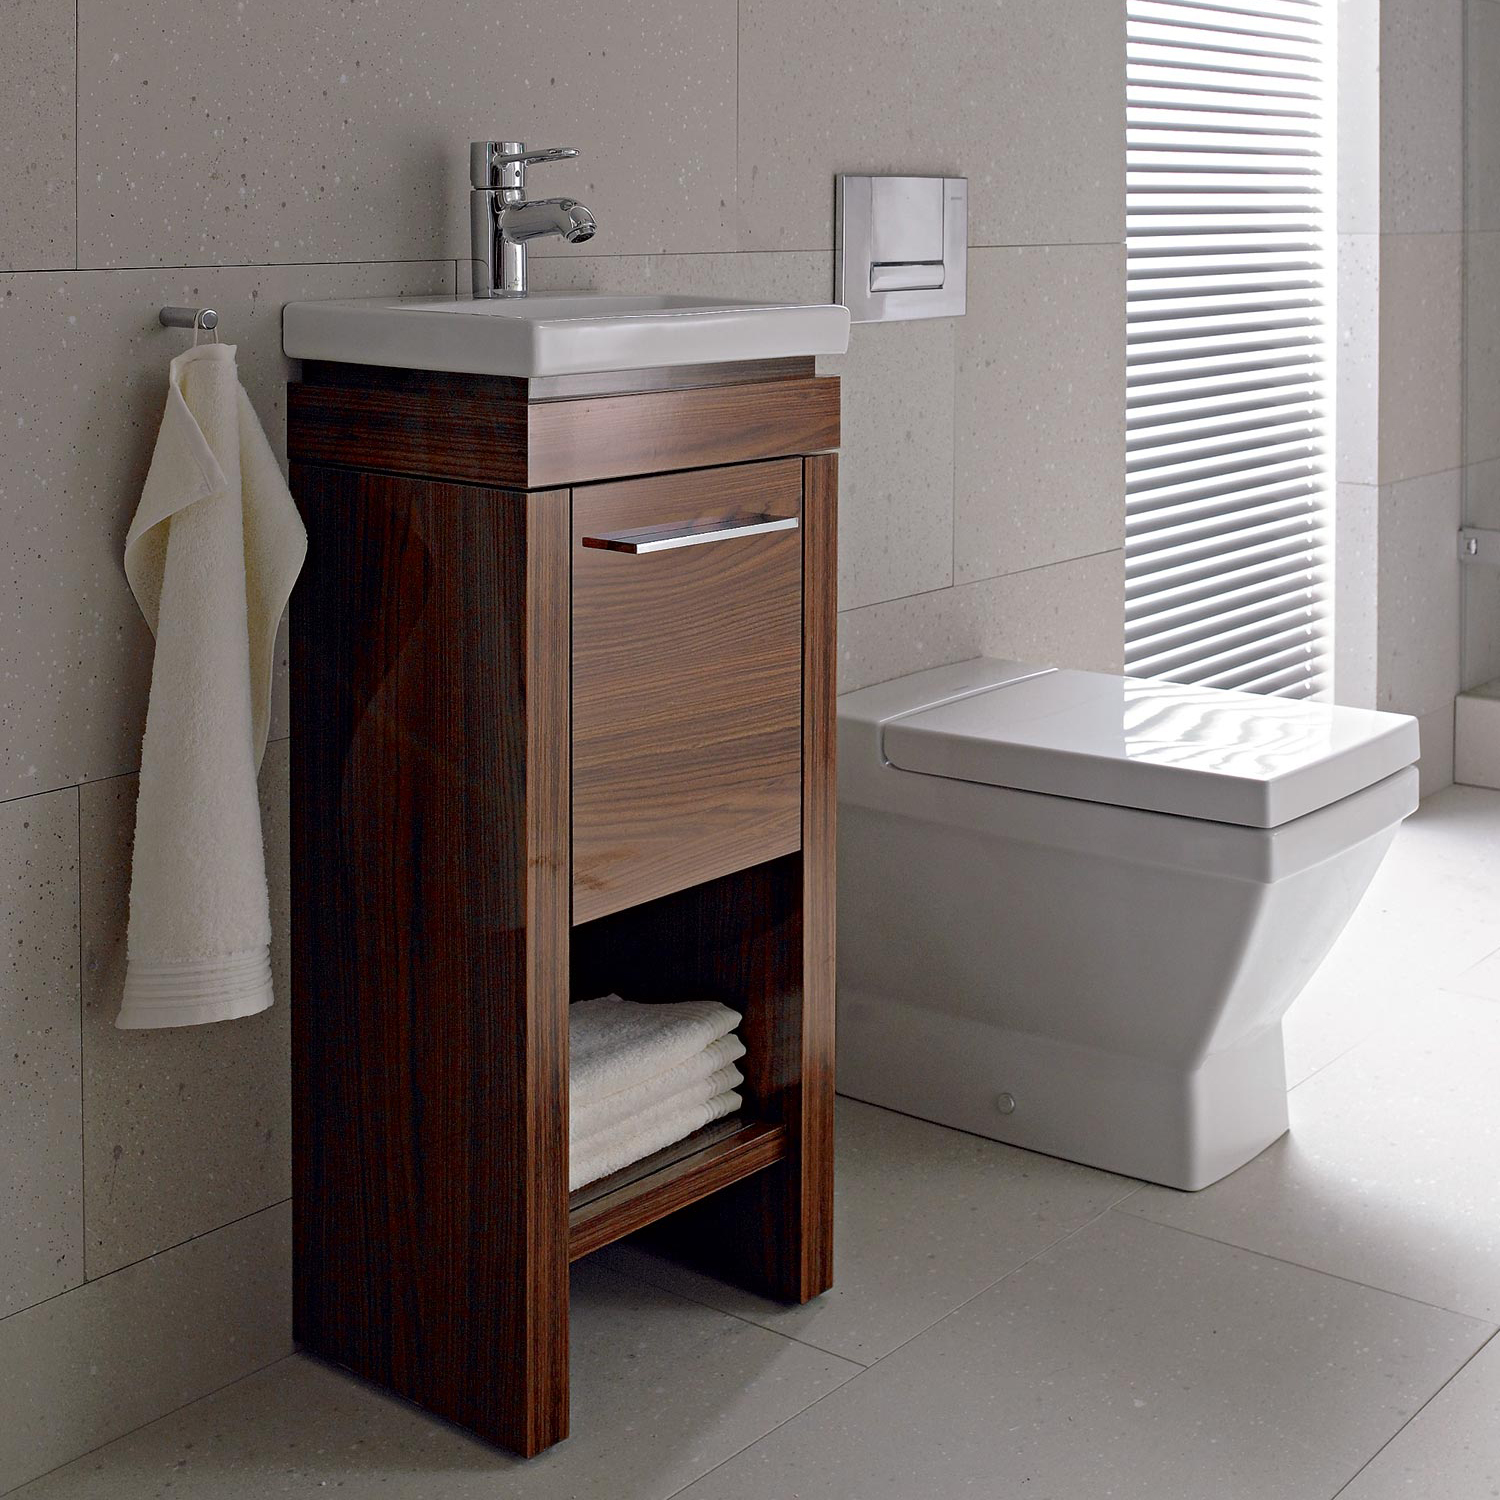 duravit_2nd floor freestanding vanity_wood finish in rosewood_w 14